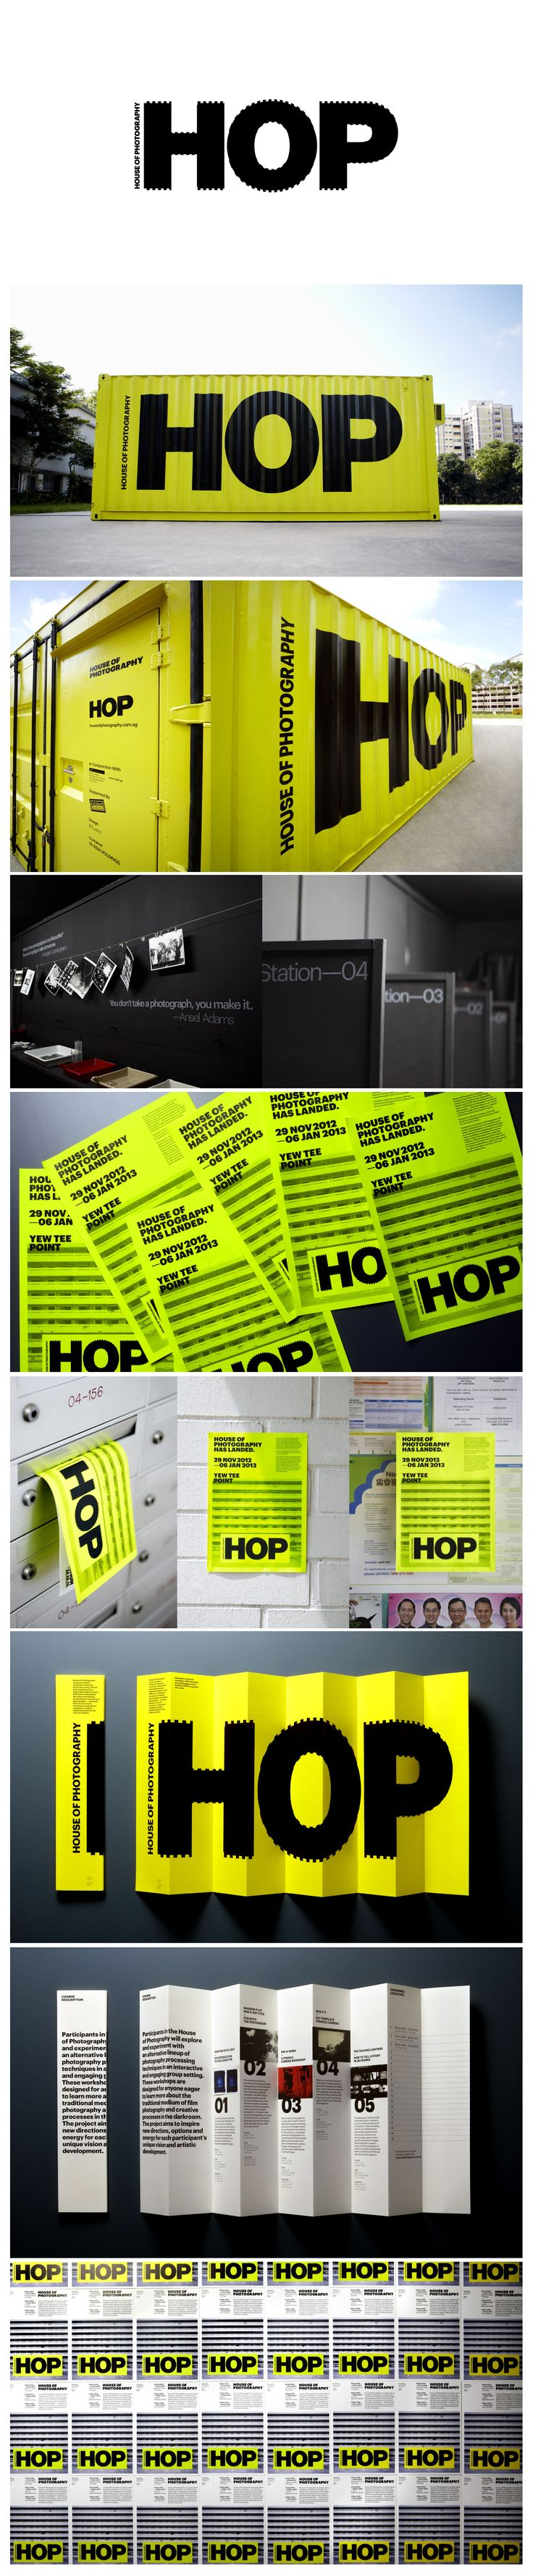 """HOP The House Of Photography marque was inspired when the initials """"HOP"""" were painted across the ridges of a shipping container, resulting in the graphically distorted effect. The design is also reminiscent of sprocket holes found on 35mm film rolls, strengthening the graphic association with photography.  http://www.andlarry.com/hop"""